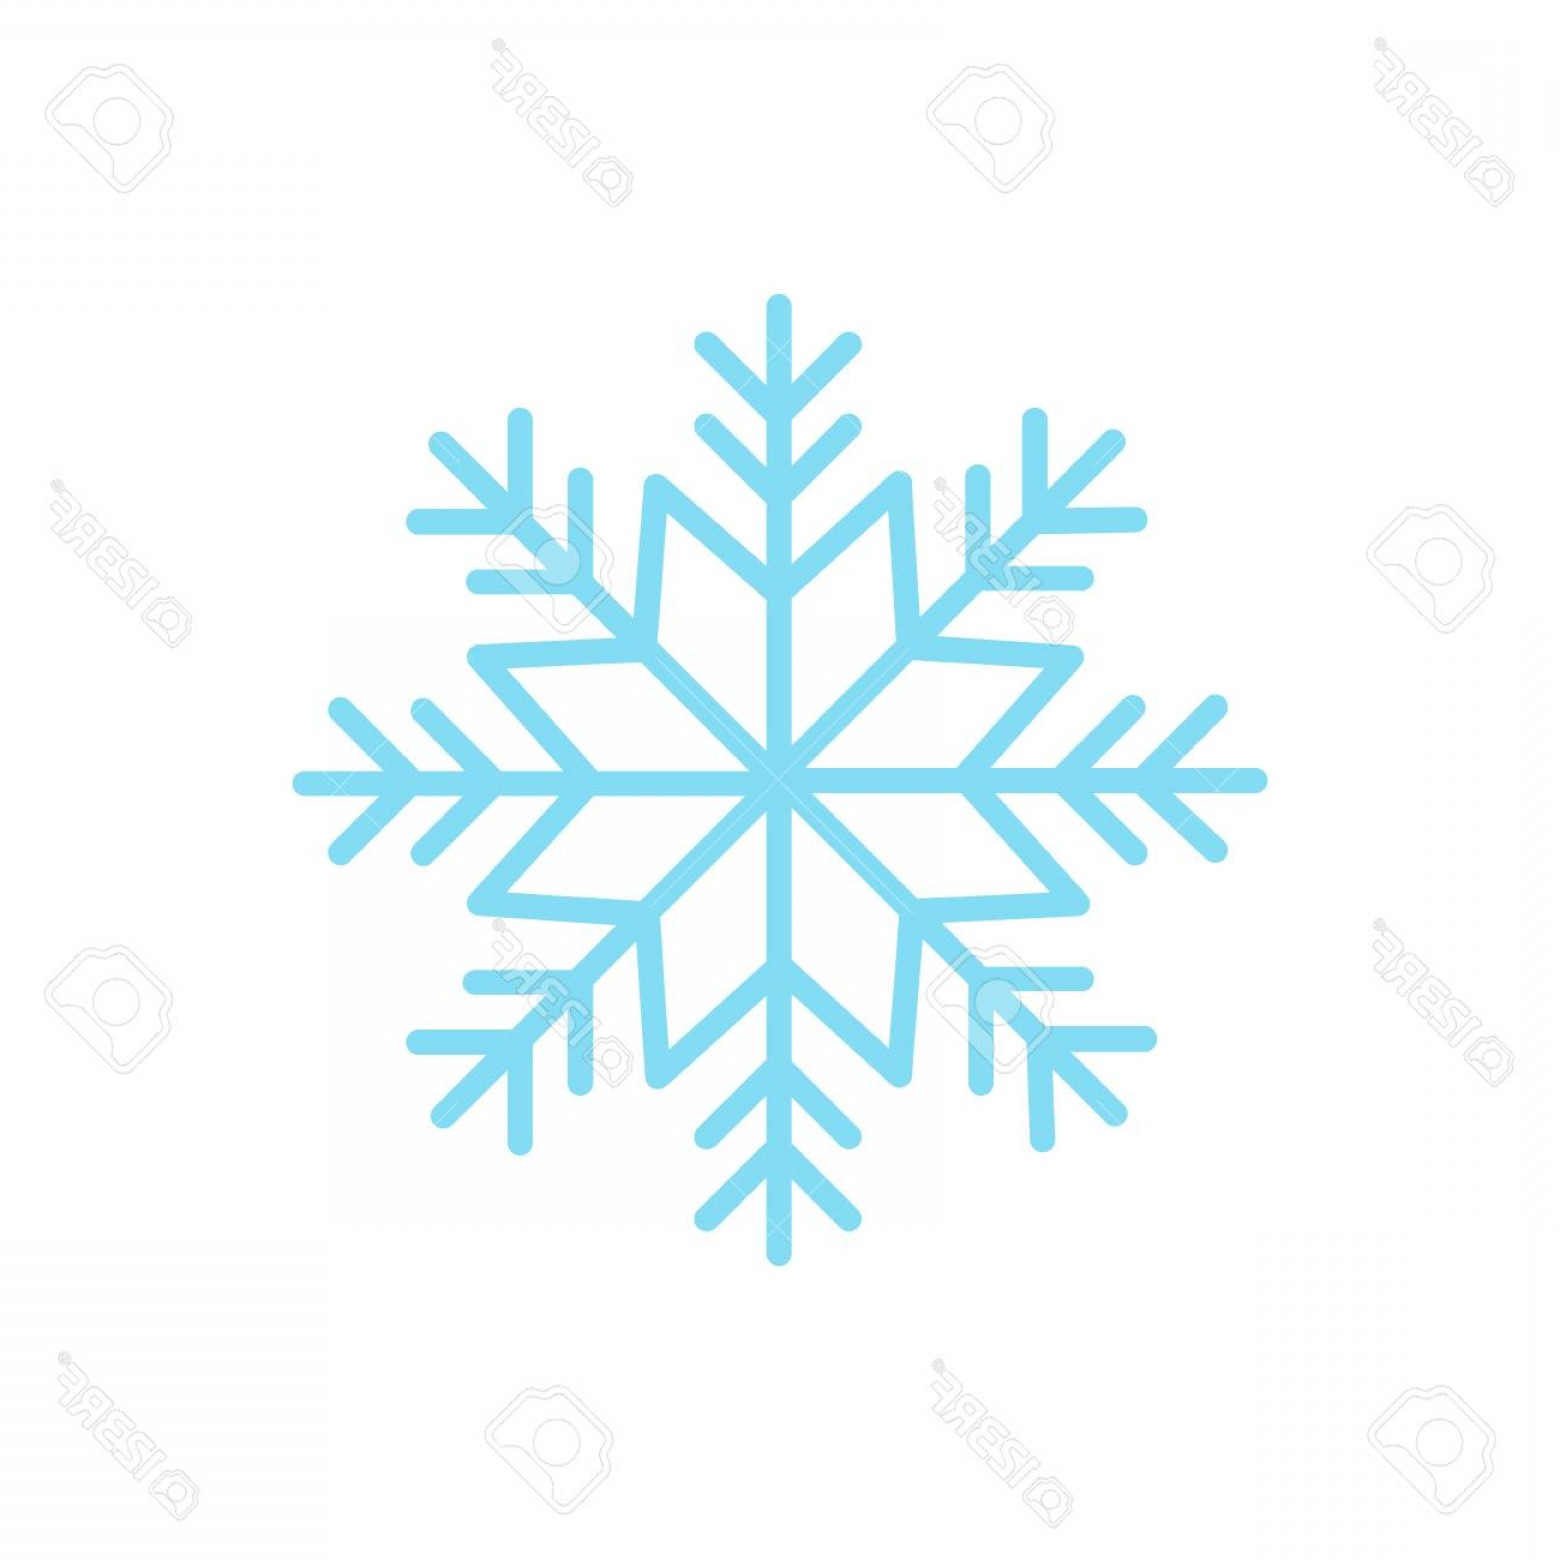 White Snowflake Vector Art: Photostock Vector Light Blue Snowflake Ice Snowflake Vector Illustration Graphic Icon Isolated On White Background